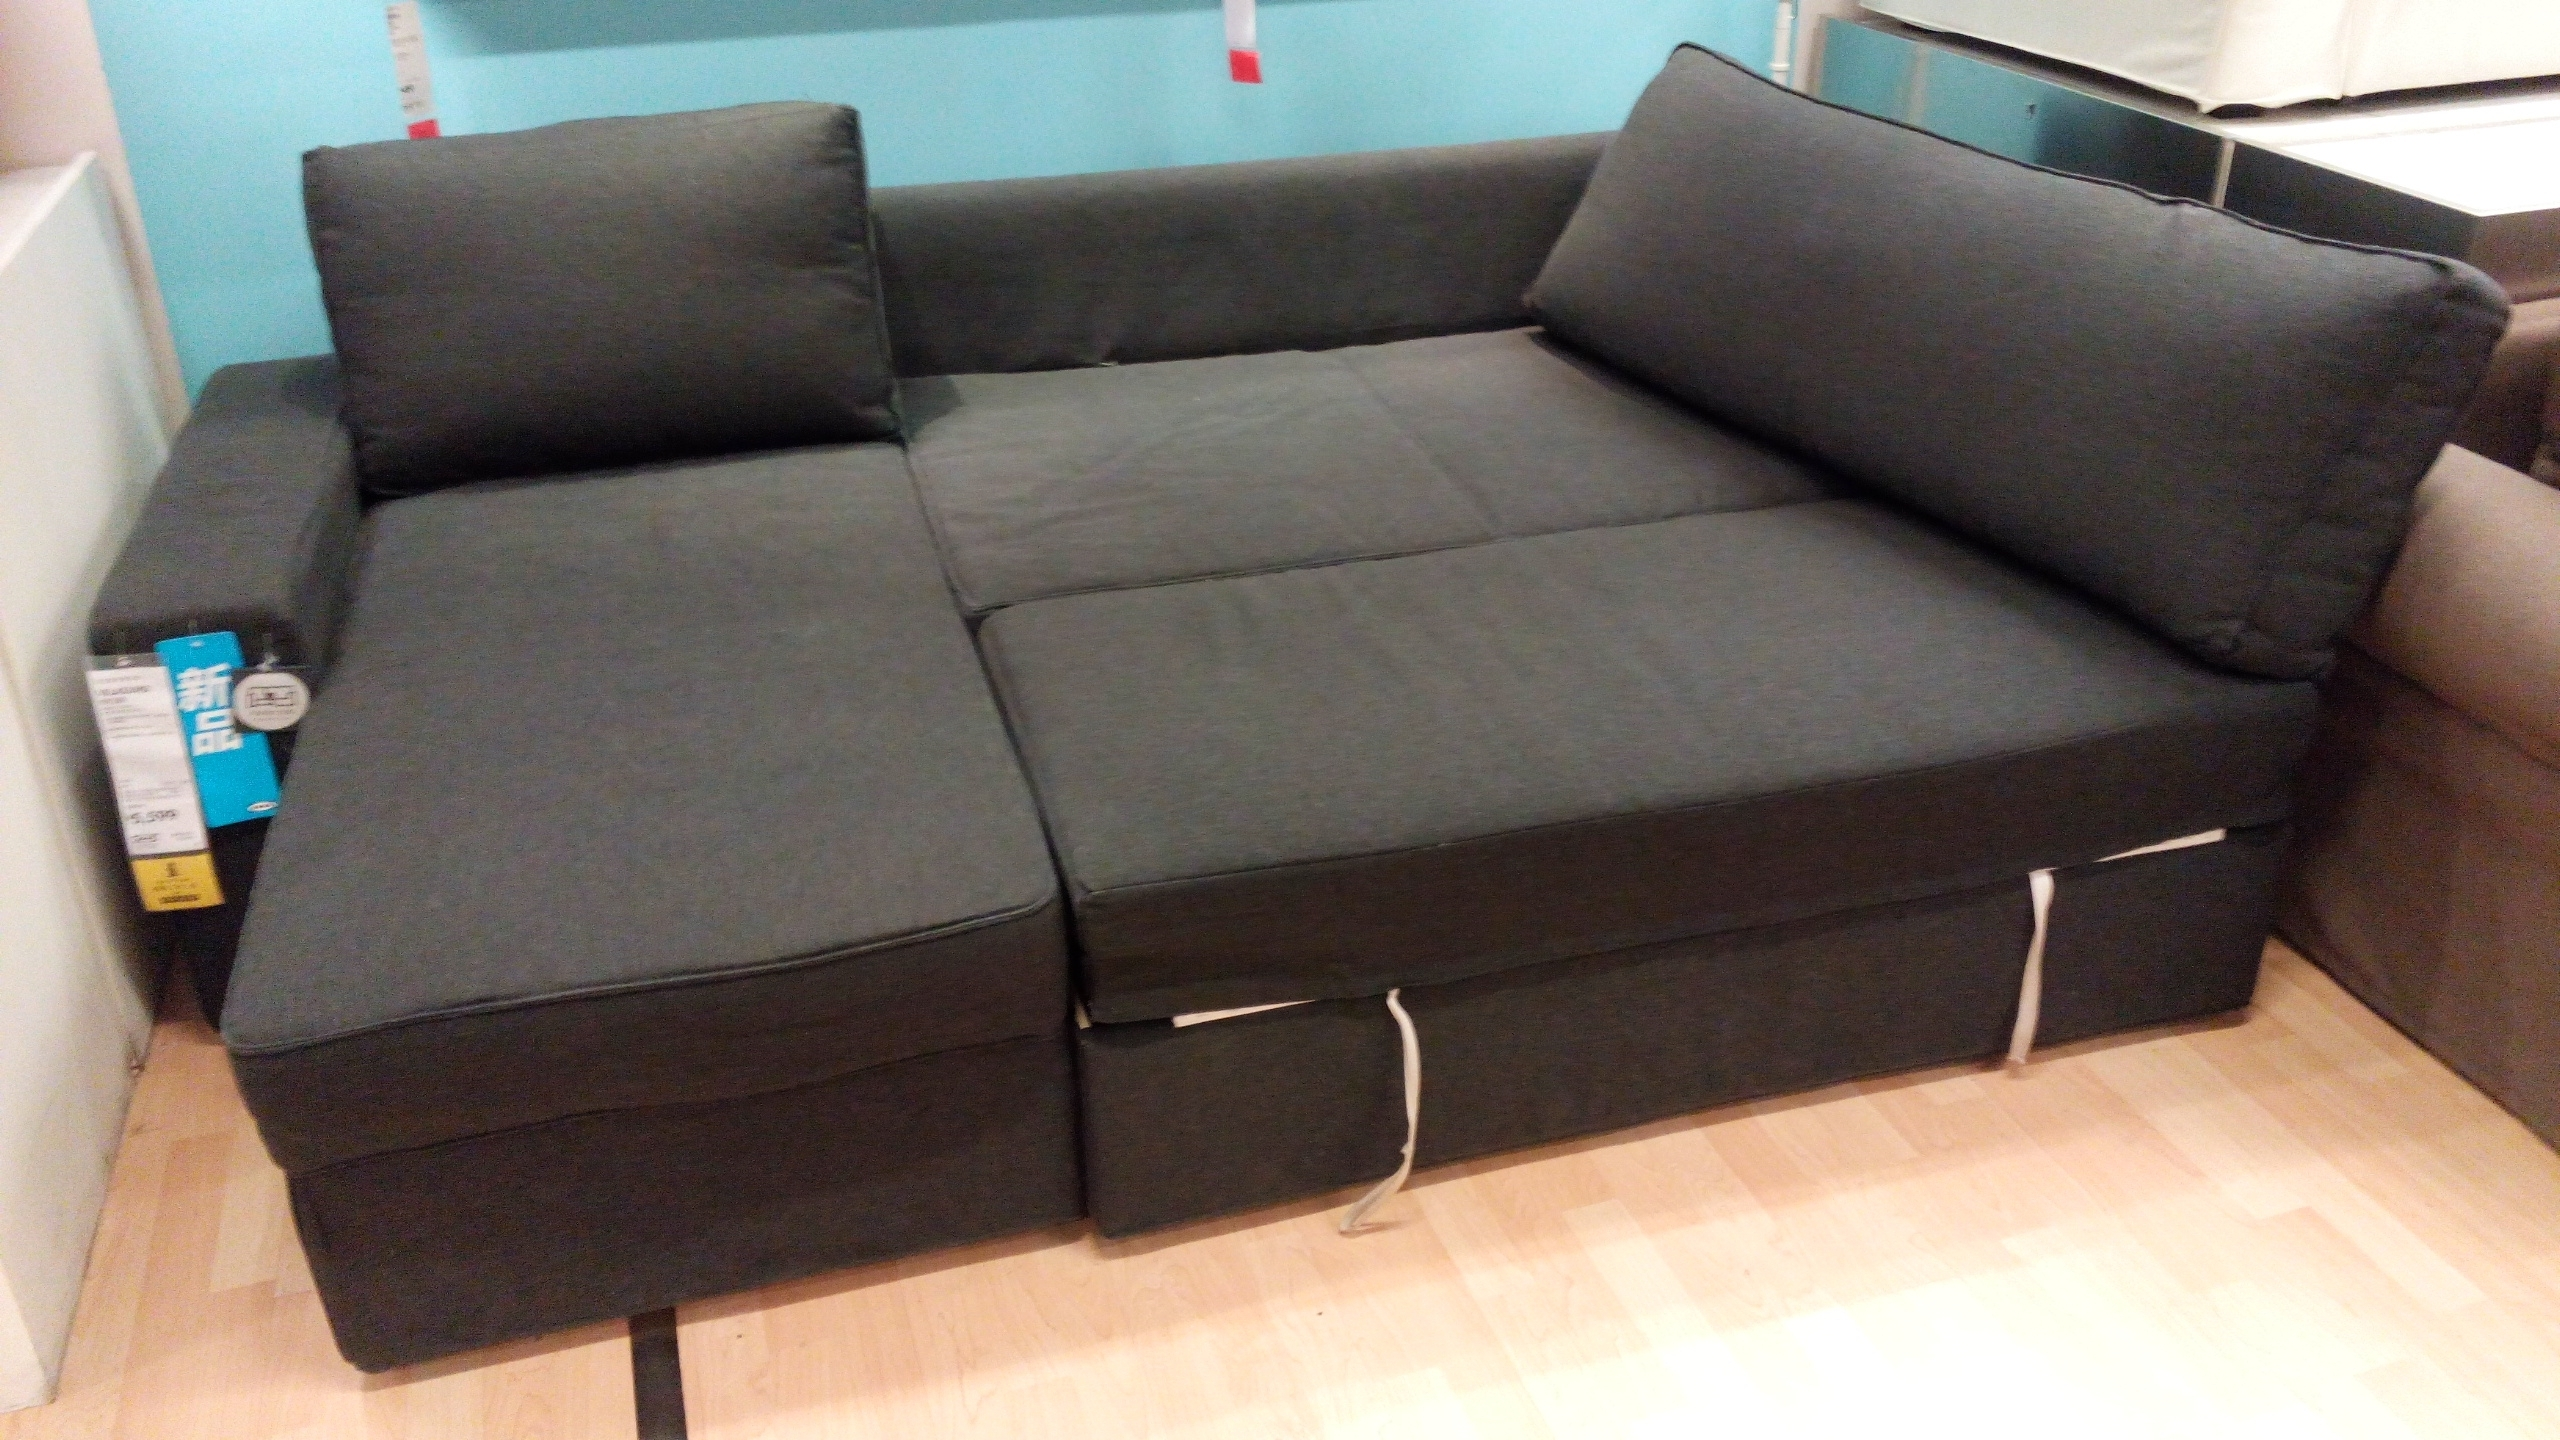 Attractive Sectional Sleeper Sofa Ikea Latest Living Room Remodel For Ikea Sectional Sleeper Sofas (View 5 of 10)